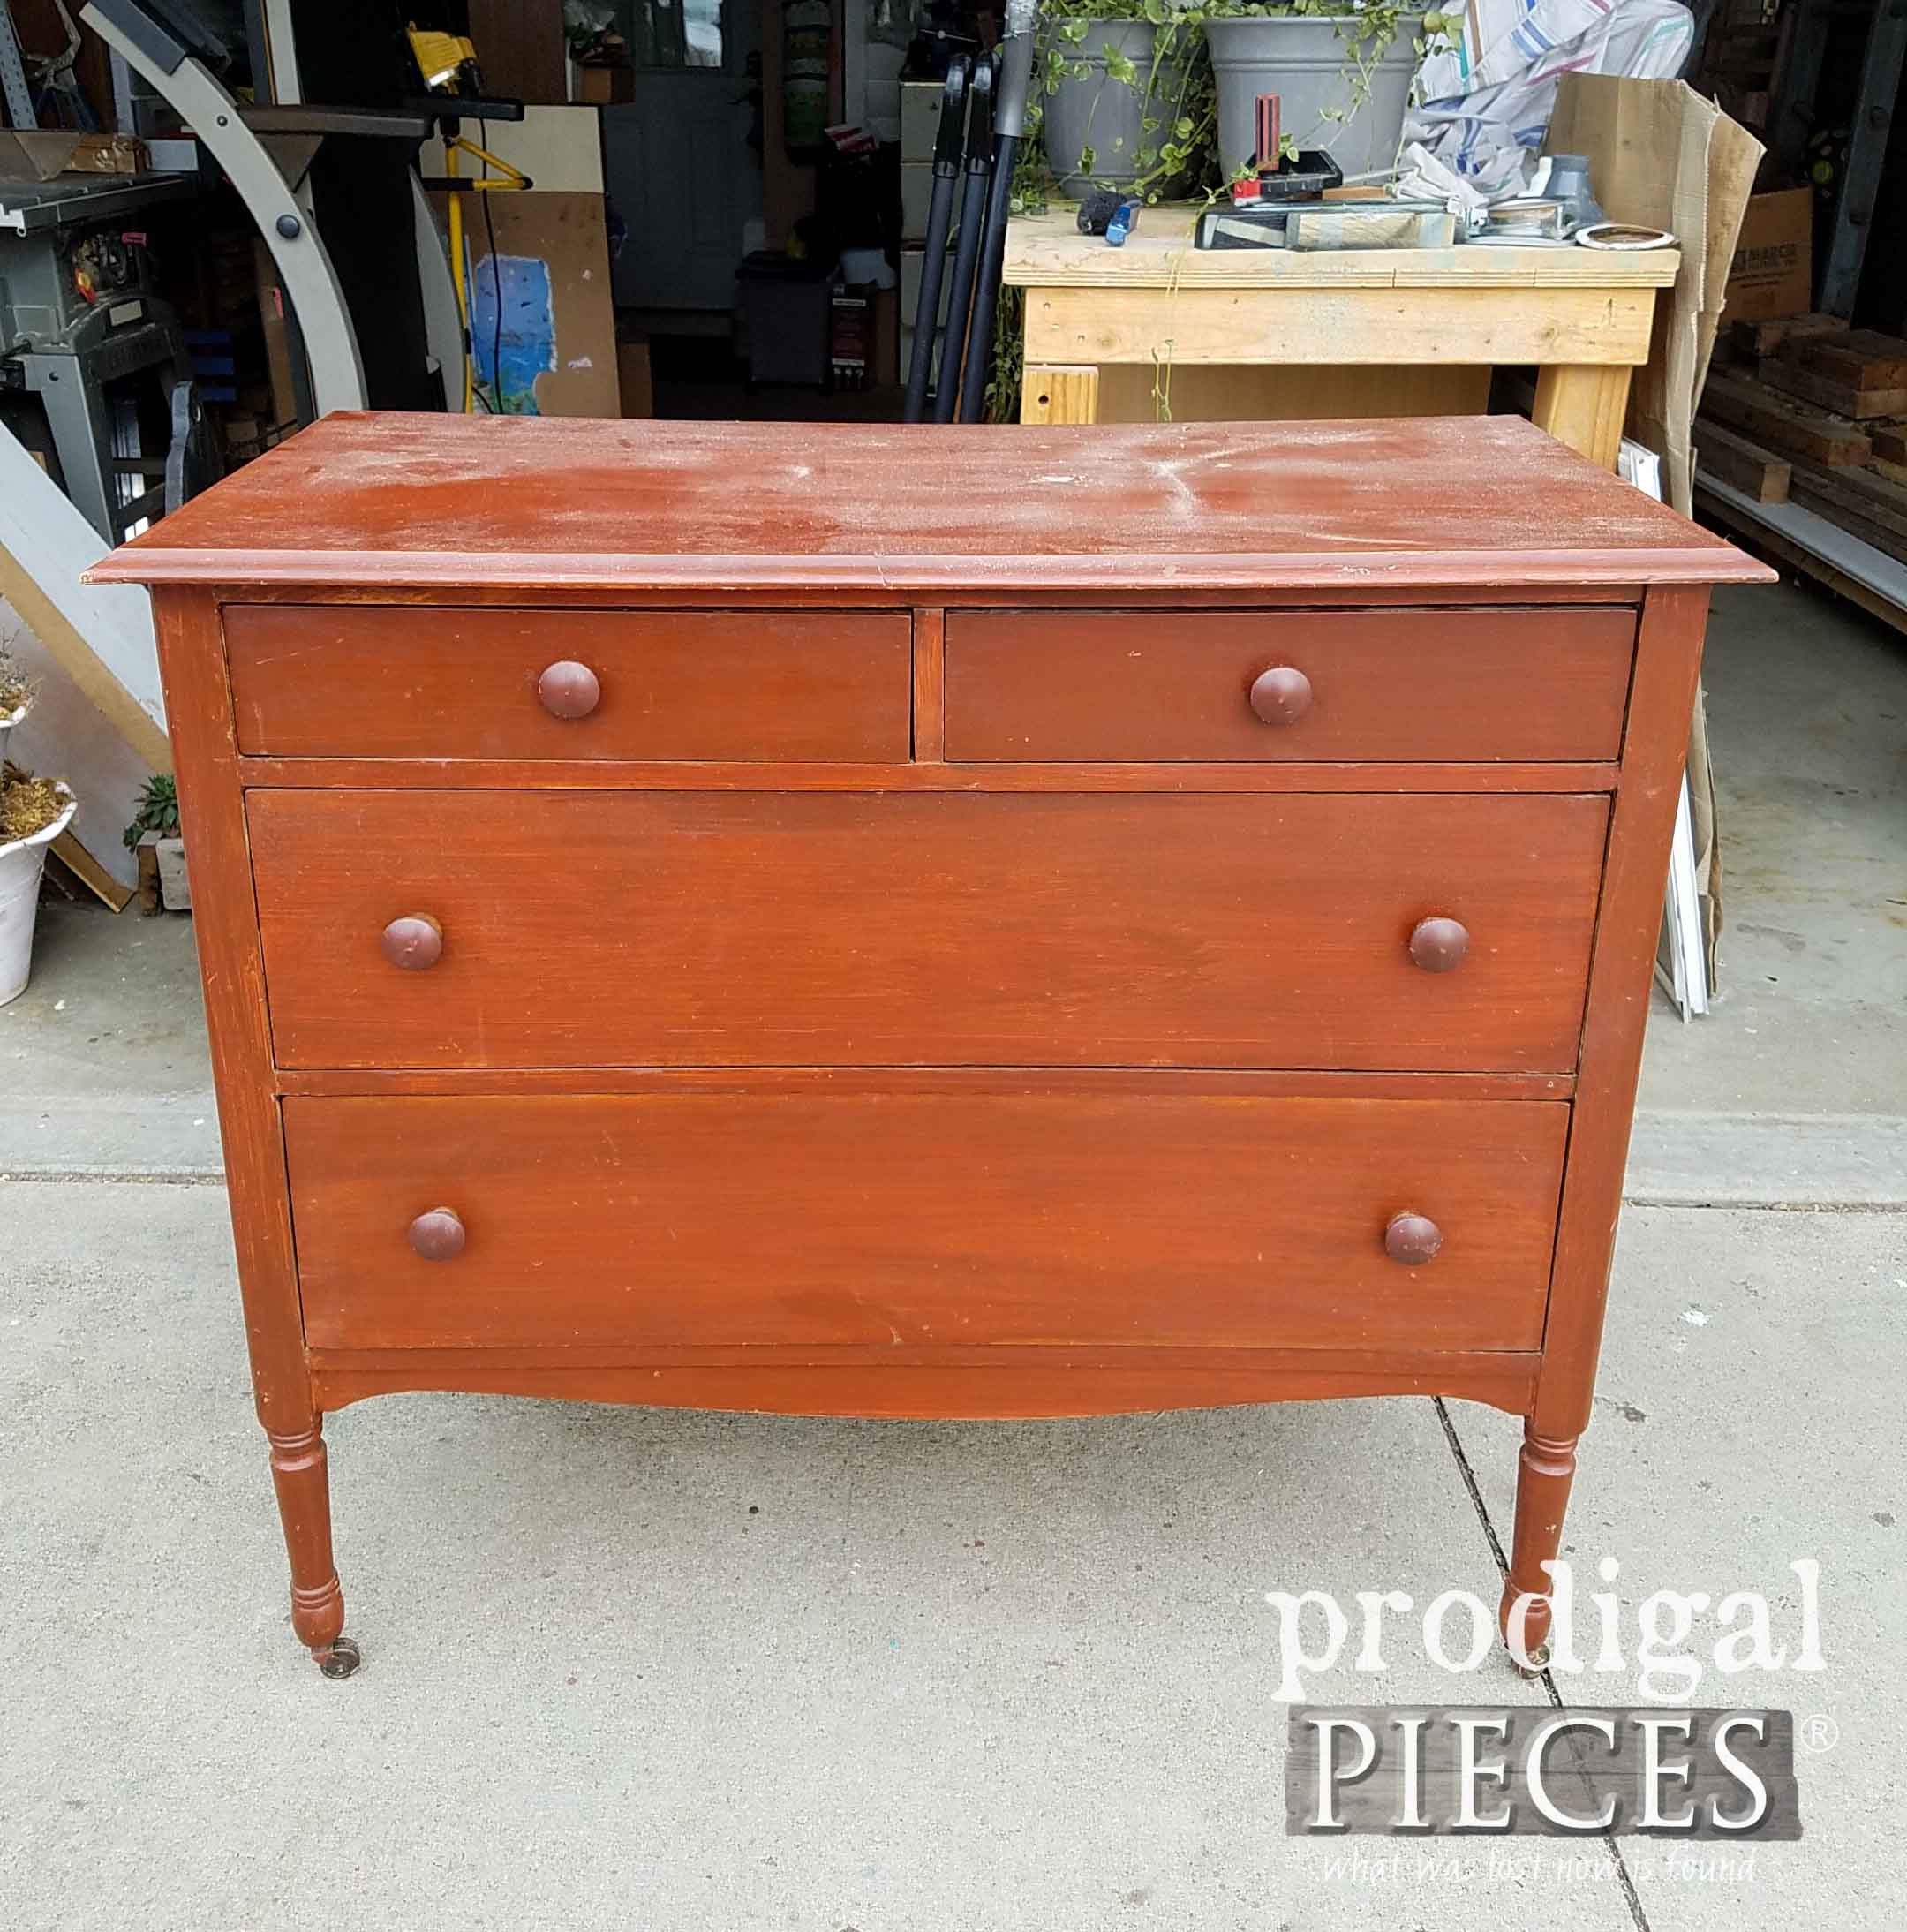 Vintage Chest Dresser Before Makeover by Prodigal Pieces | prodigalpieces.com